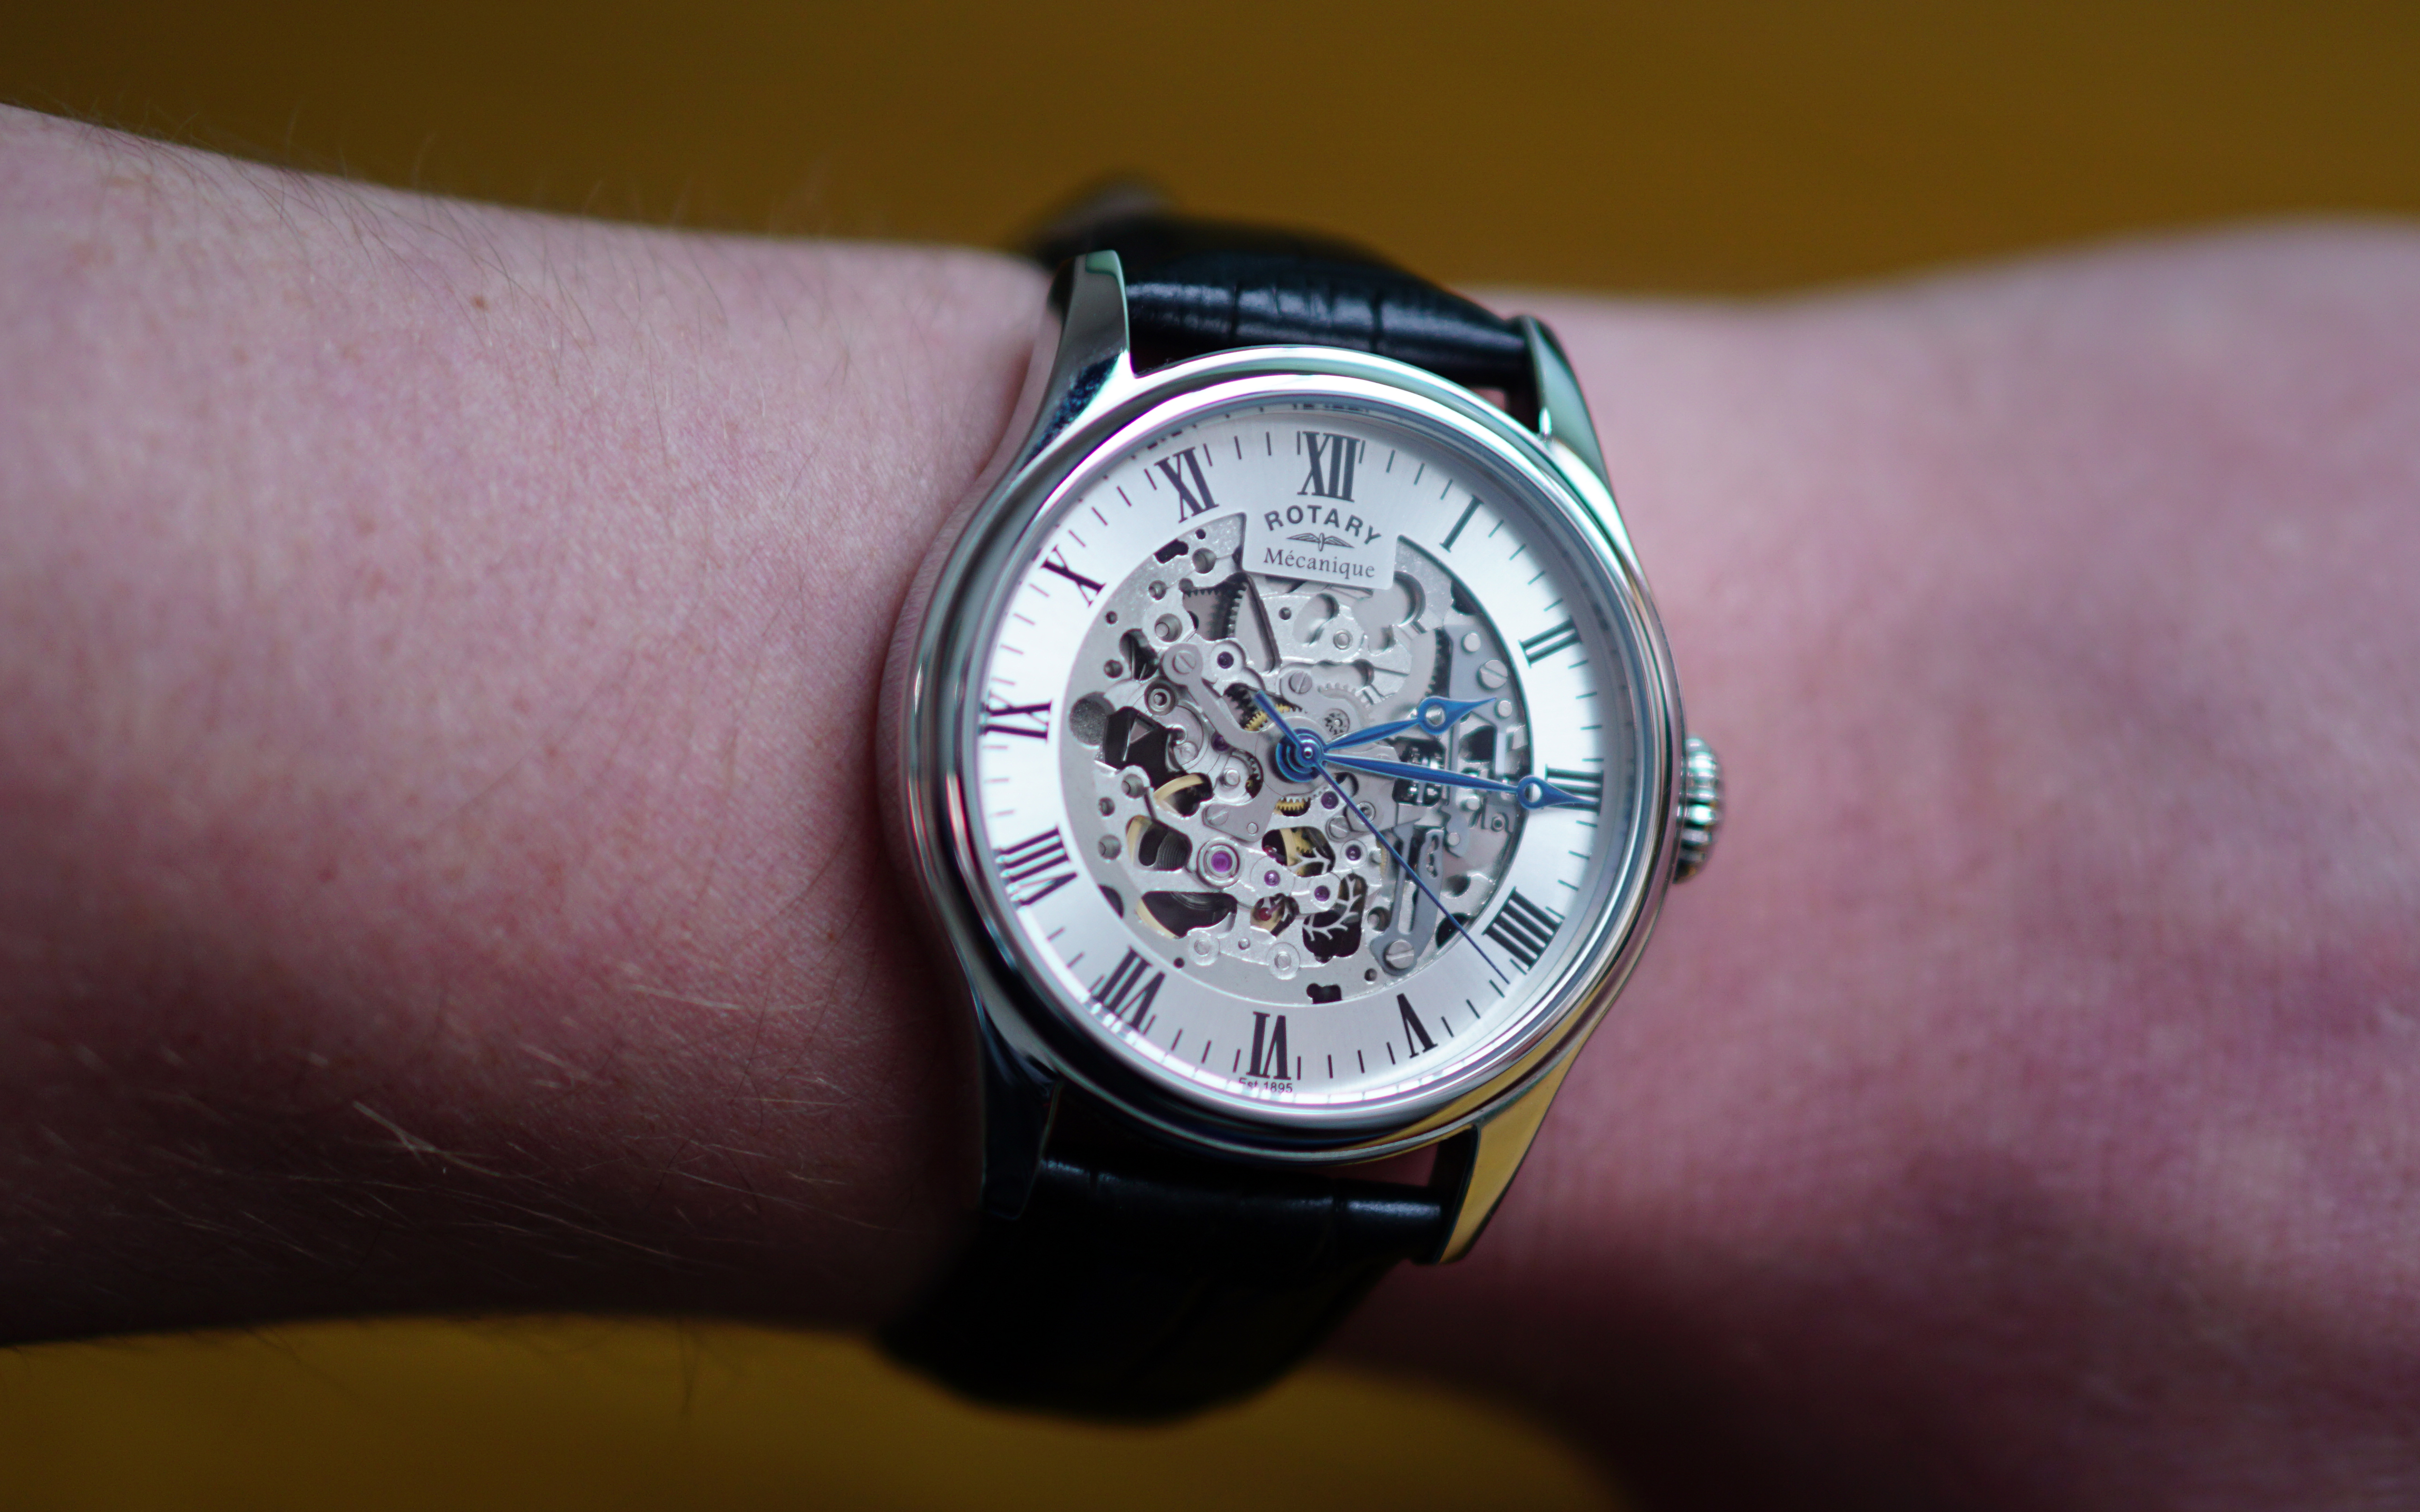 c7a9496a7d15 Firstly I would like to commend Watch Shop for their overall shopping  experience